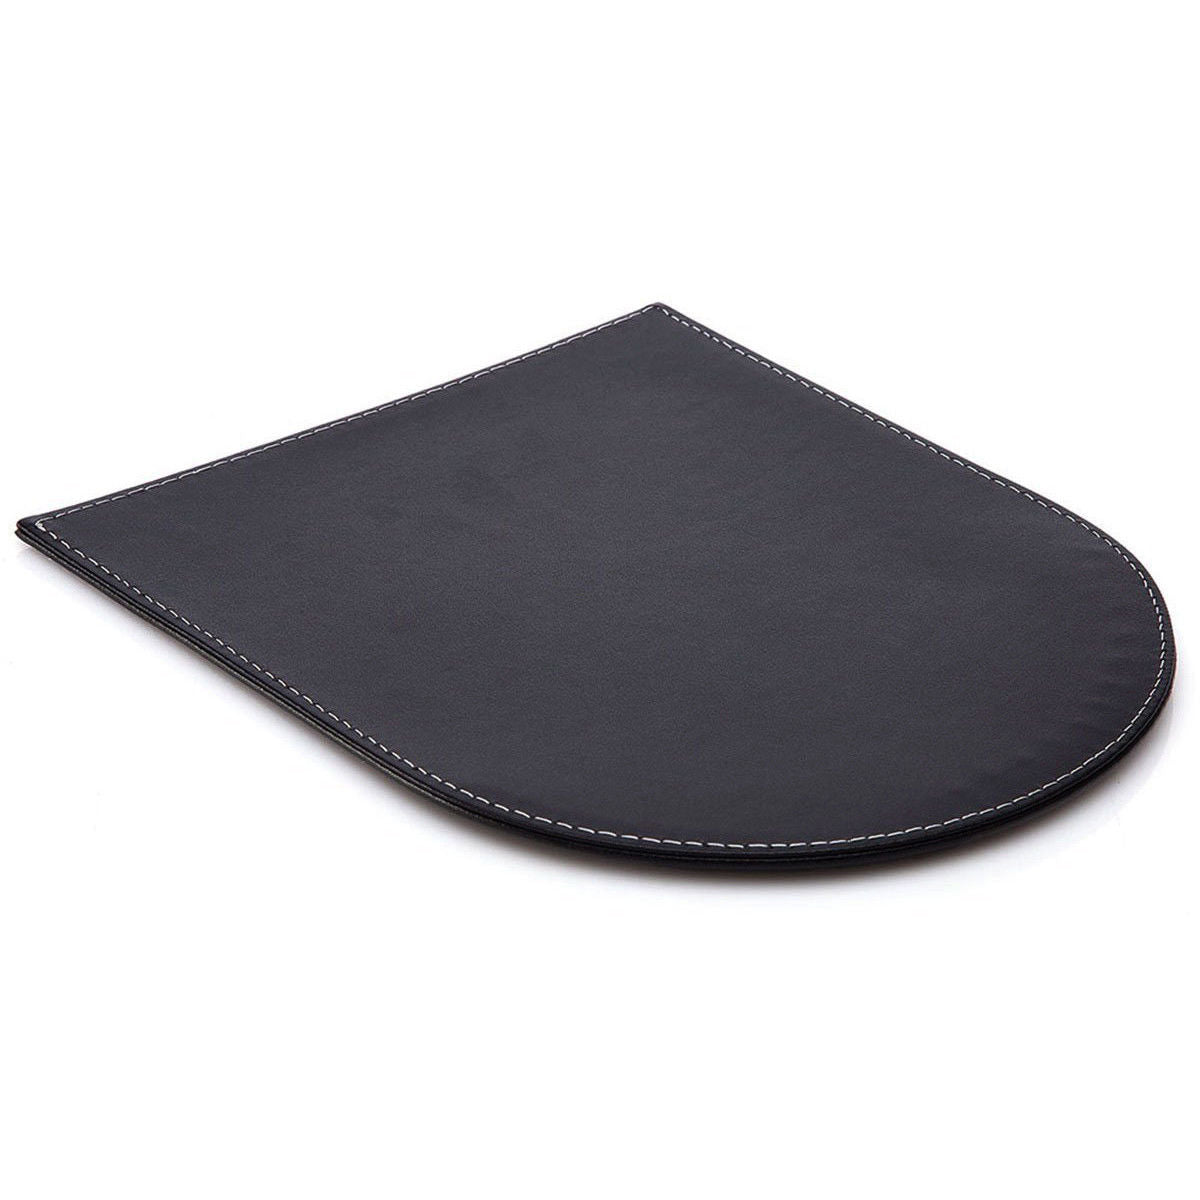 Premium Black Synthetic PU Leather Ergonomic Mouse Pad with Wrist Rest Support